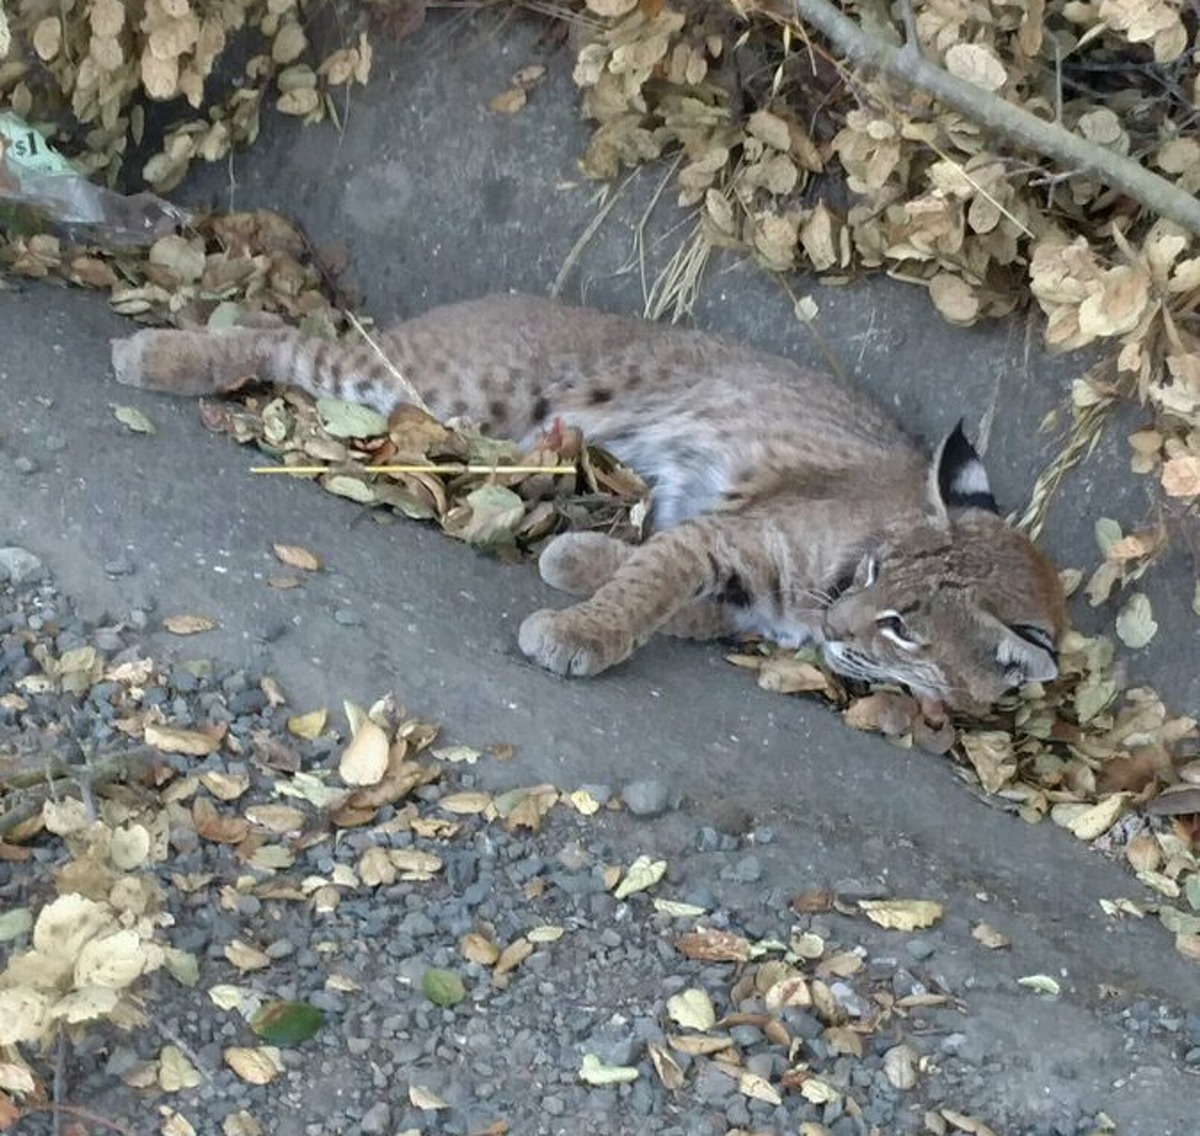 An injured bobcat was rescued by the California Highway Patrol.